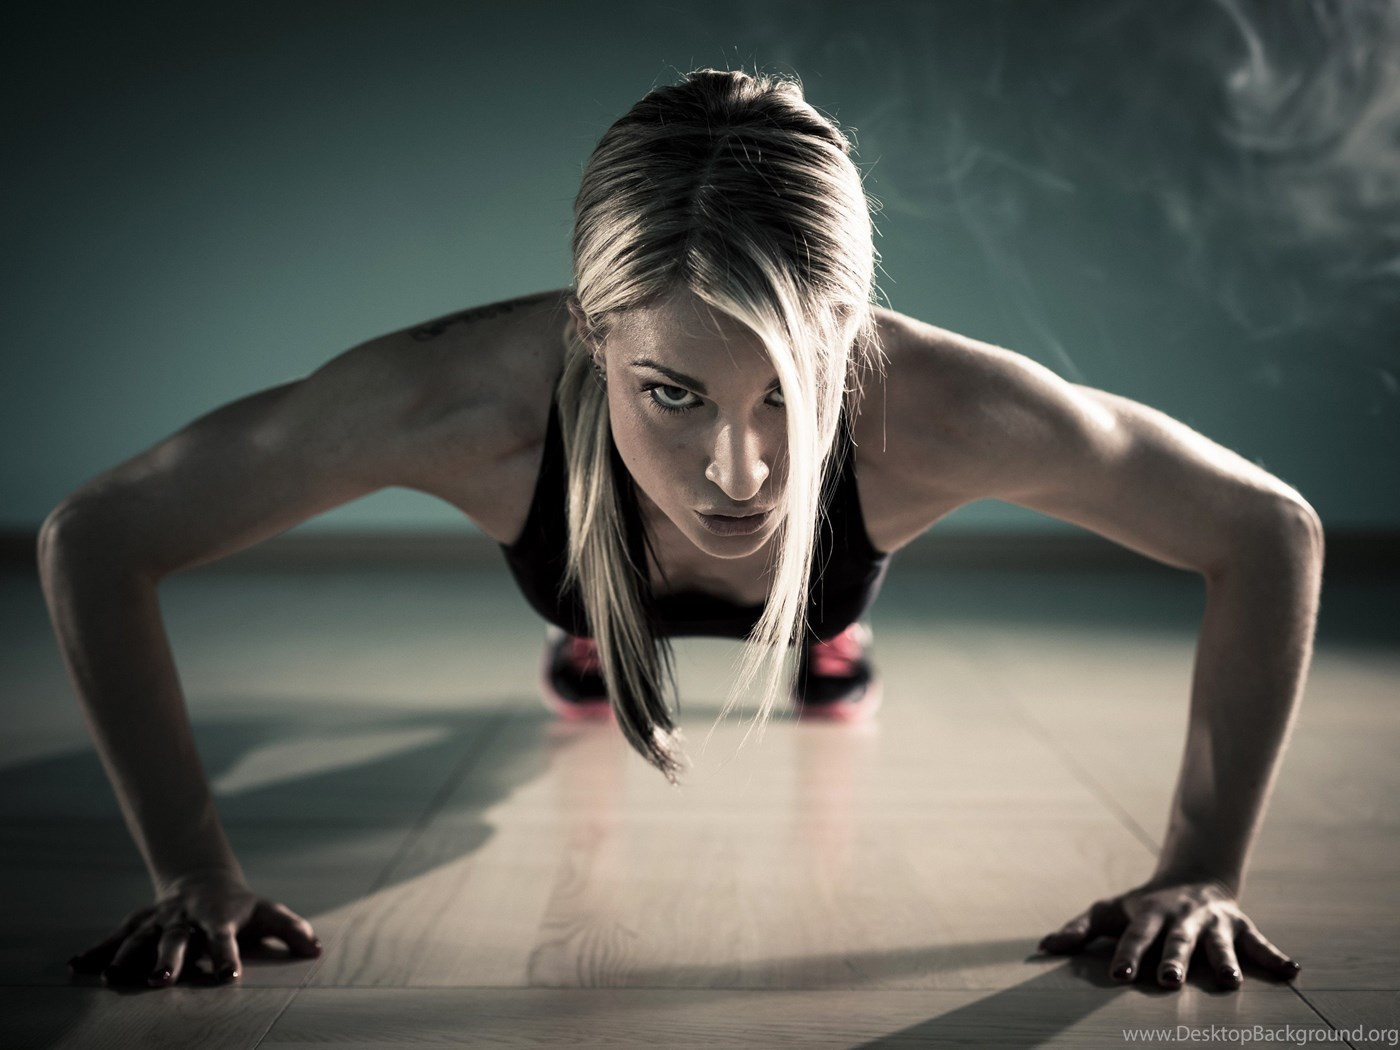 Working out exercising fitness model women sports - Wallpaper fitness women ...